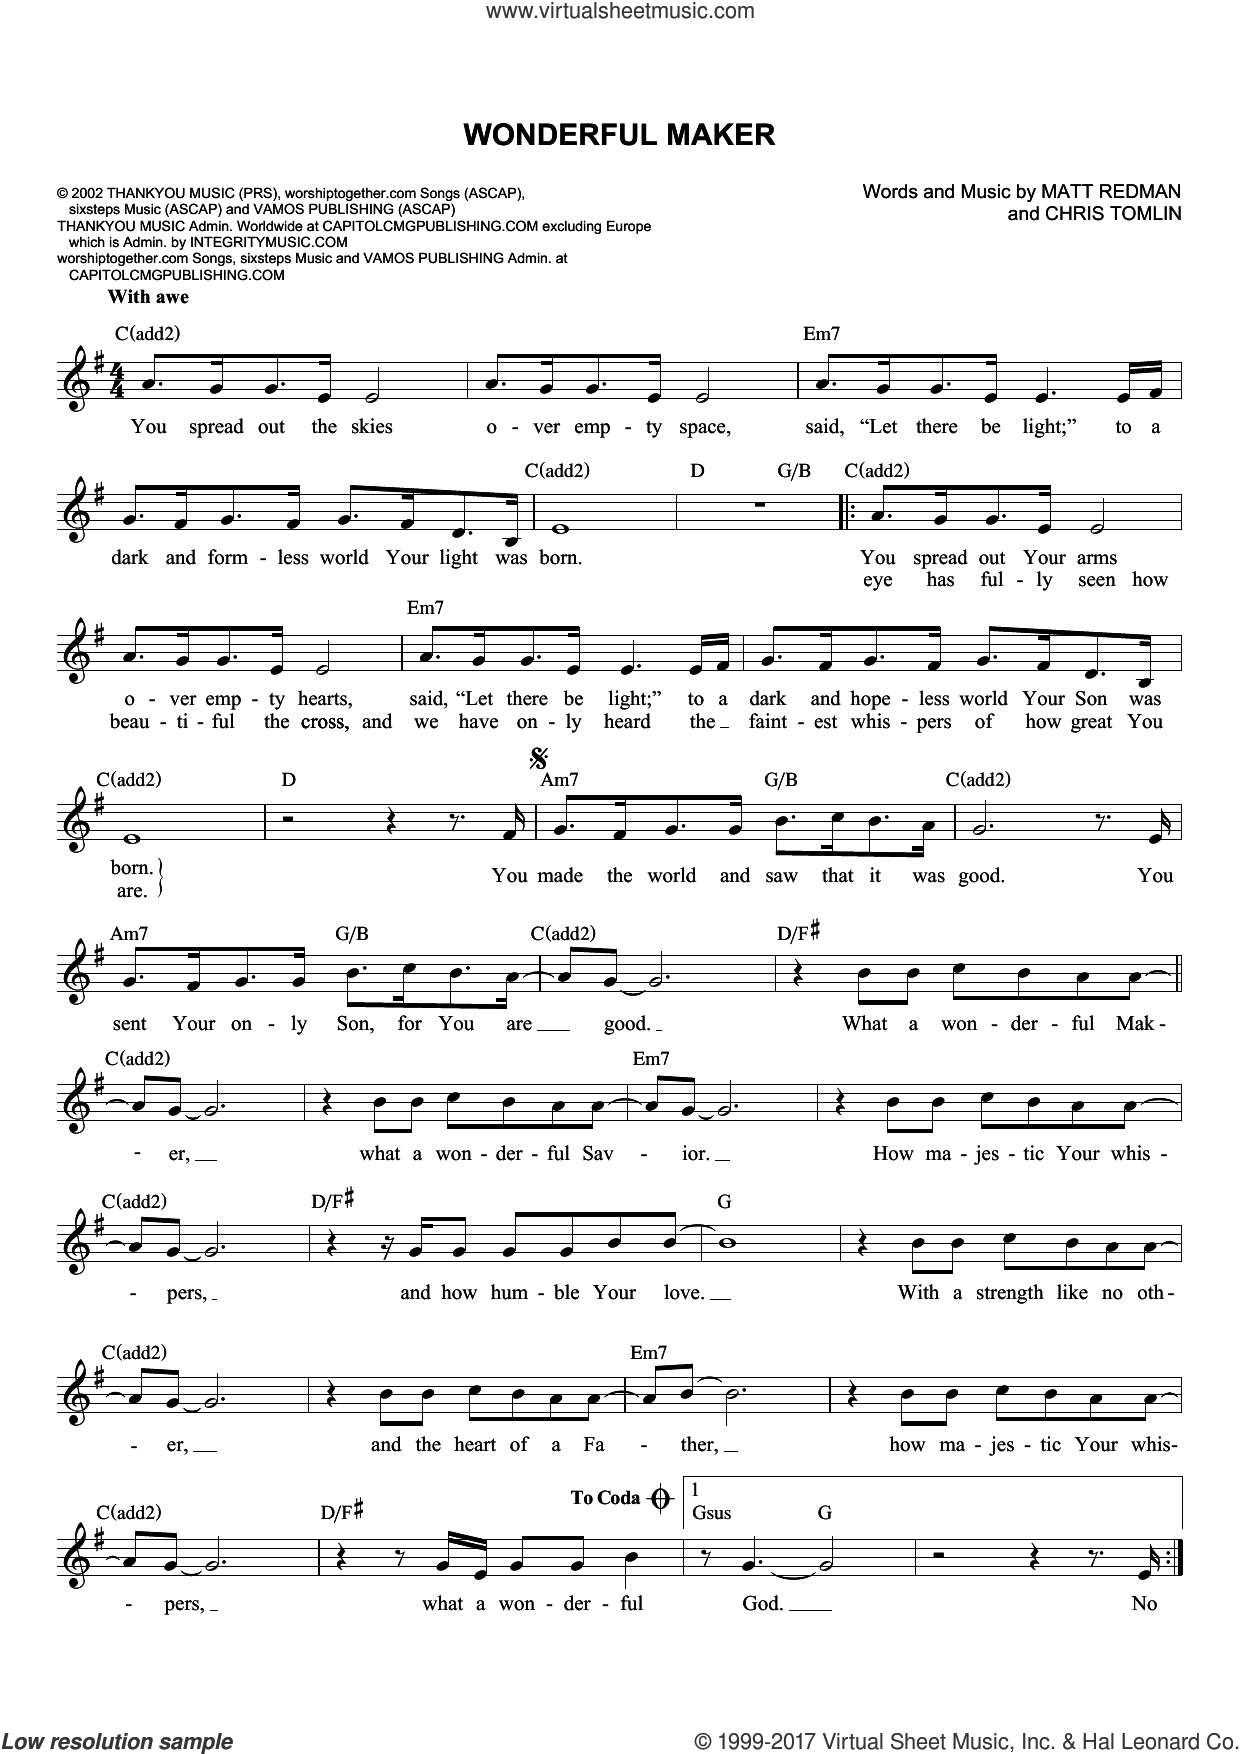 Wonderful Maker sheet music for voice and other instruments (fake book) by Chris Tomlin and Matt Redman, intermediate skill level